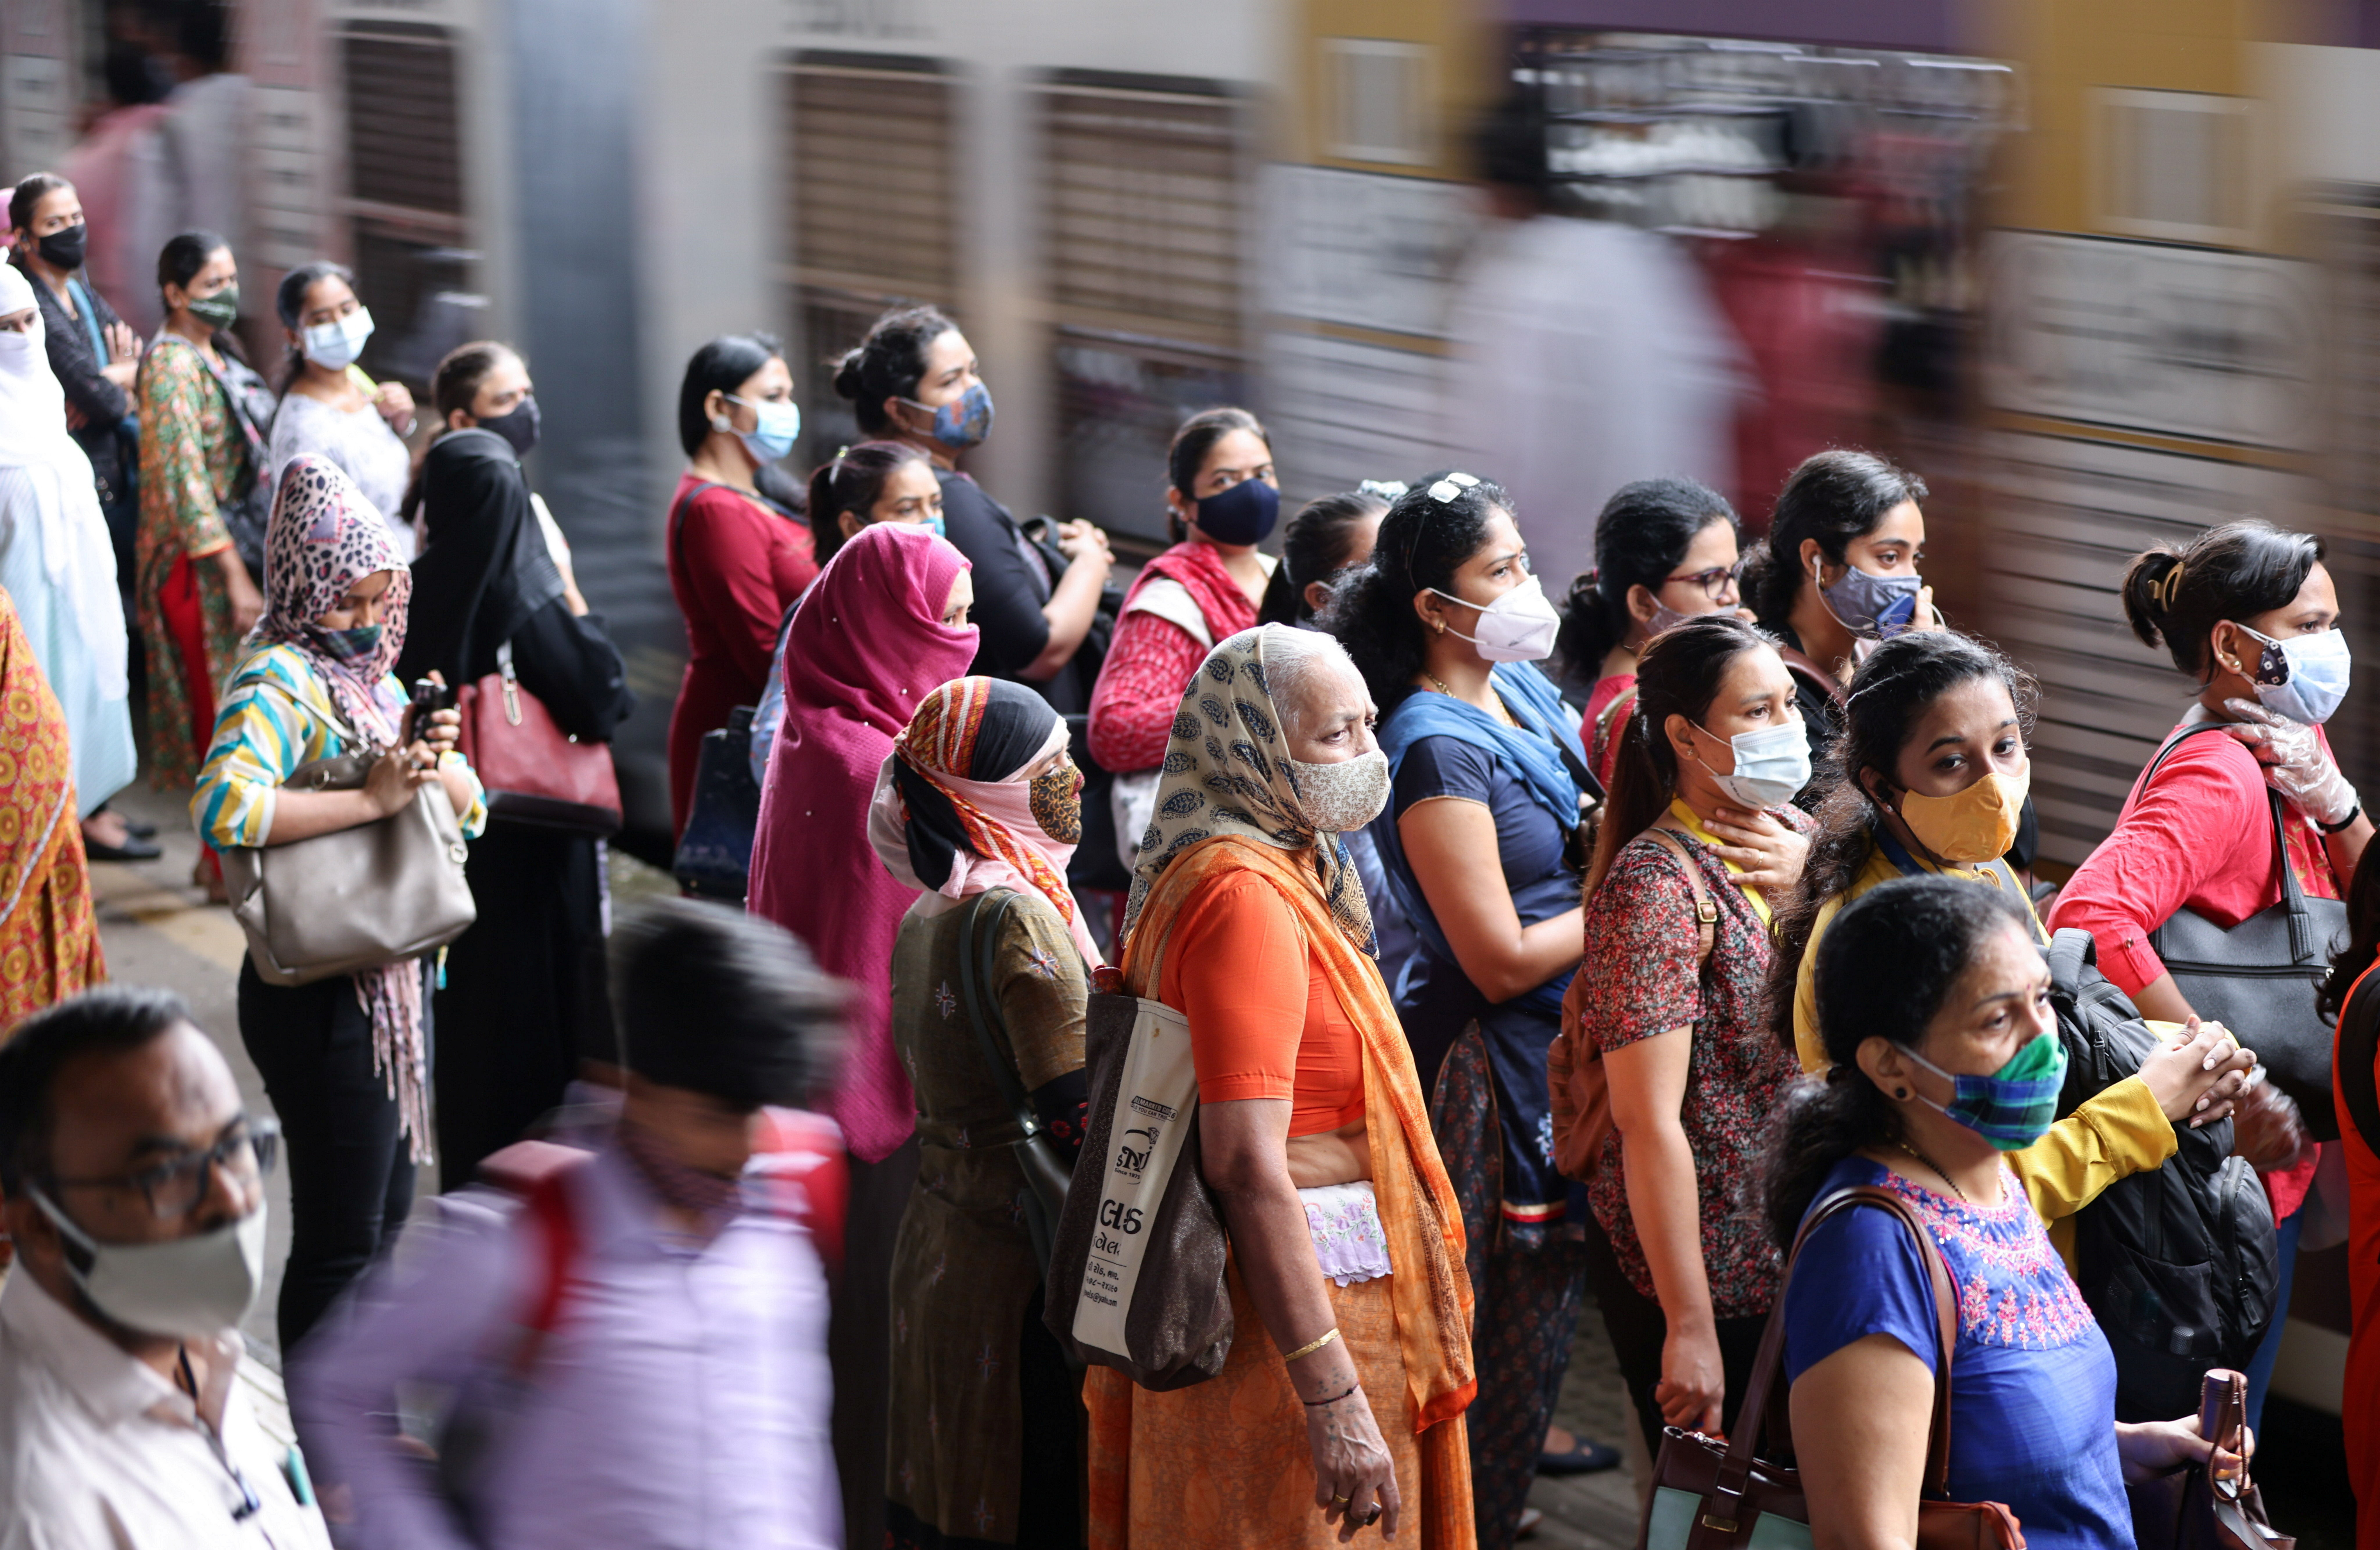 Commuters wearing protective face masks wait to board a suburban train after authorities resumed train services for vaccinated passengers amid the coronavirus disease (COVID-19) pandemic, in Mumbai, India, August 17, 2021. REUTERS/Francis Mascarenhas - RC2R6P9CHMC0